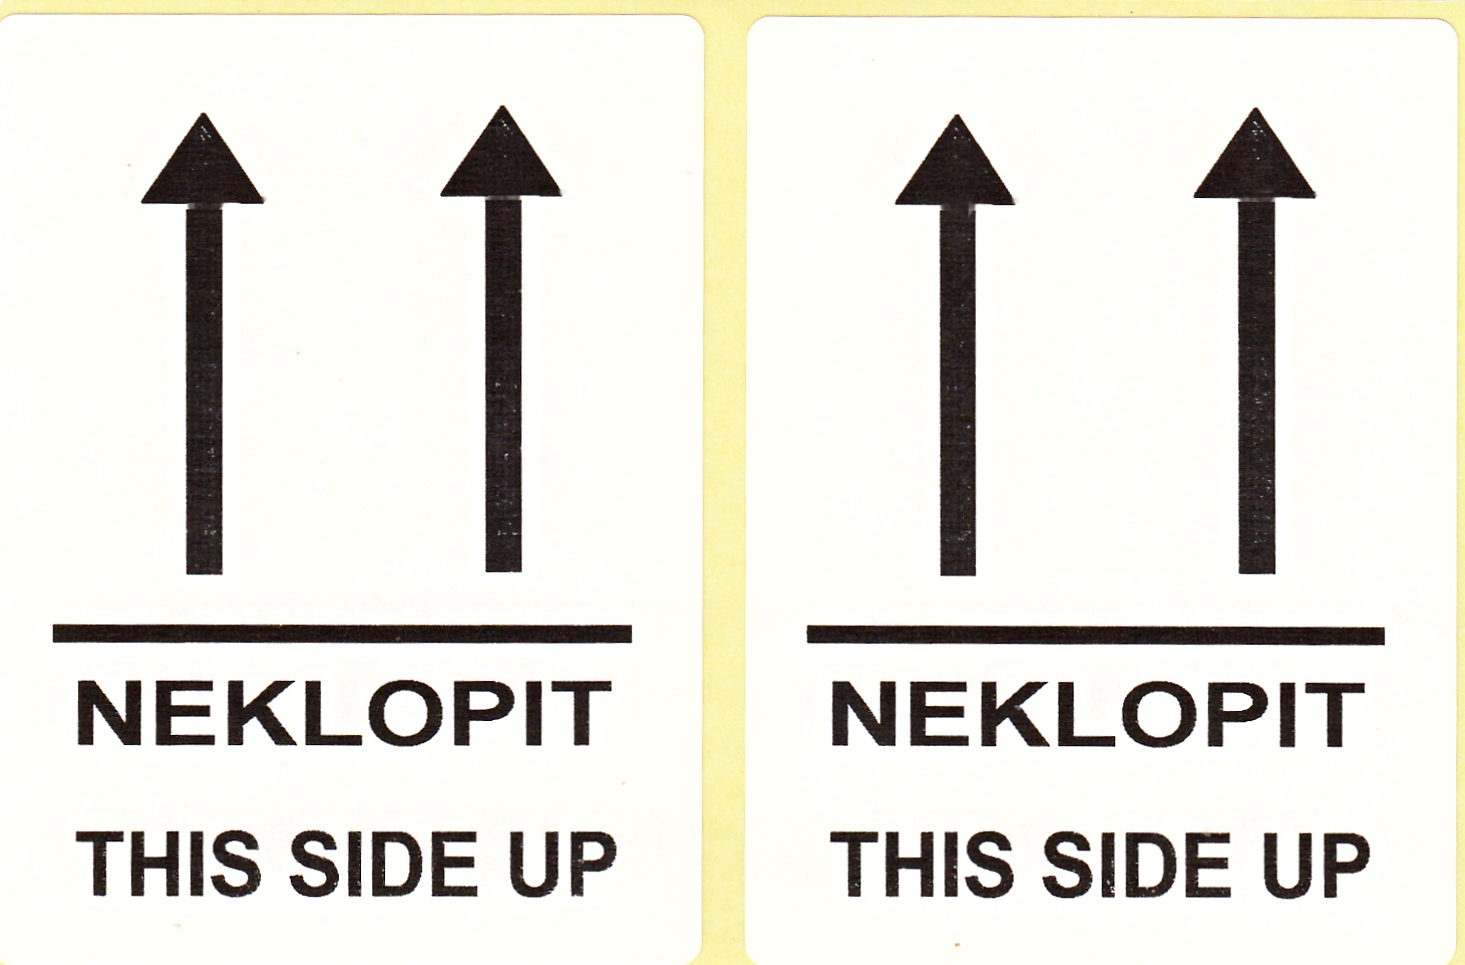 """NEKLOPIT - THIS SIDE UP"" - etikety 68 x 45  mm - bílé"